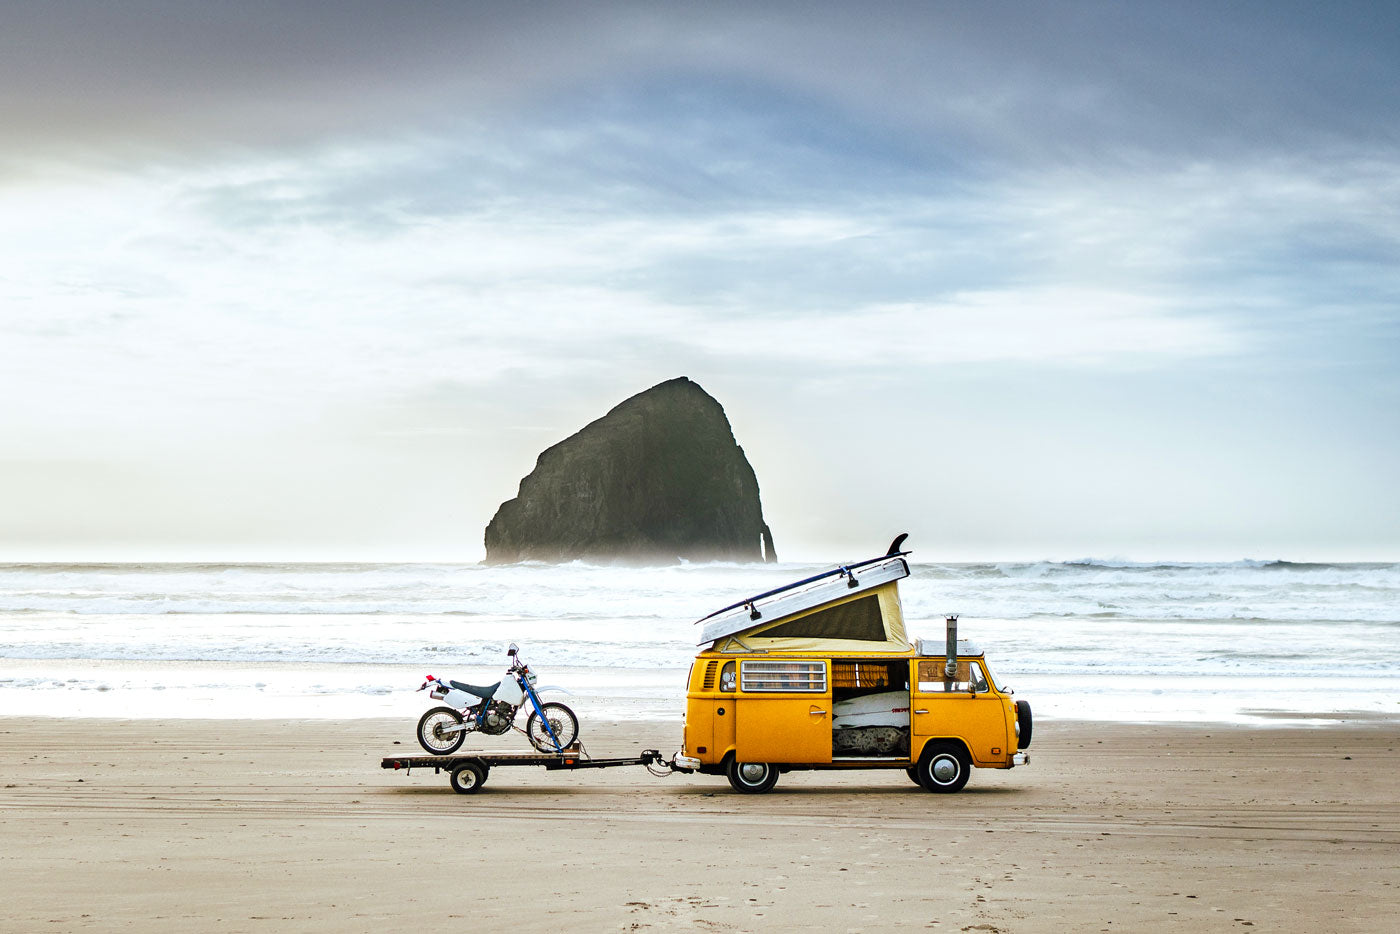 A van parked on a deserted beach. A motorcycle is parked on a hanger attached to the van. In the background is a rock formation in the ocean. (Photo: James Barkman)